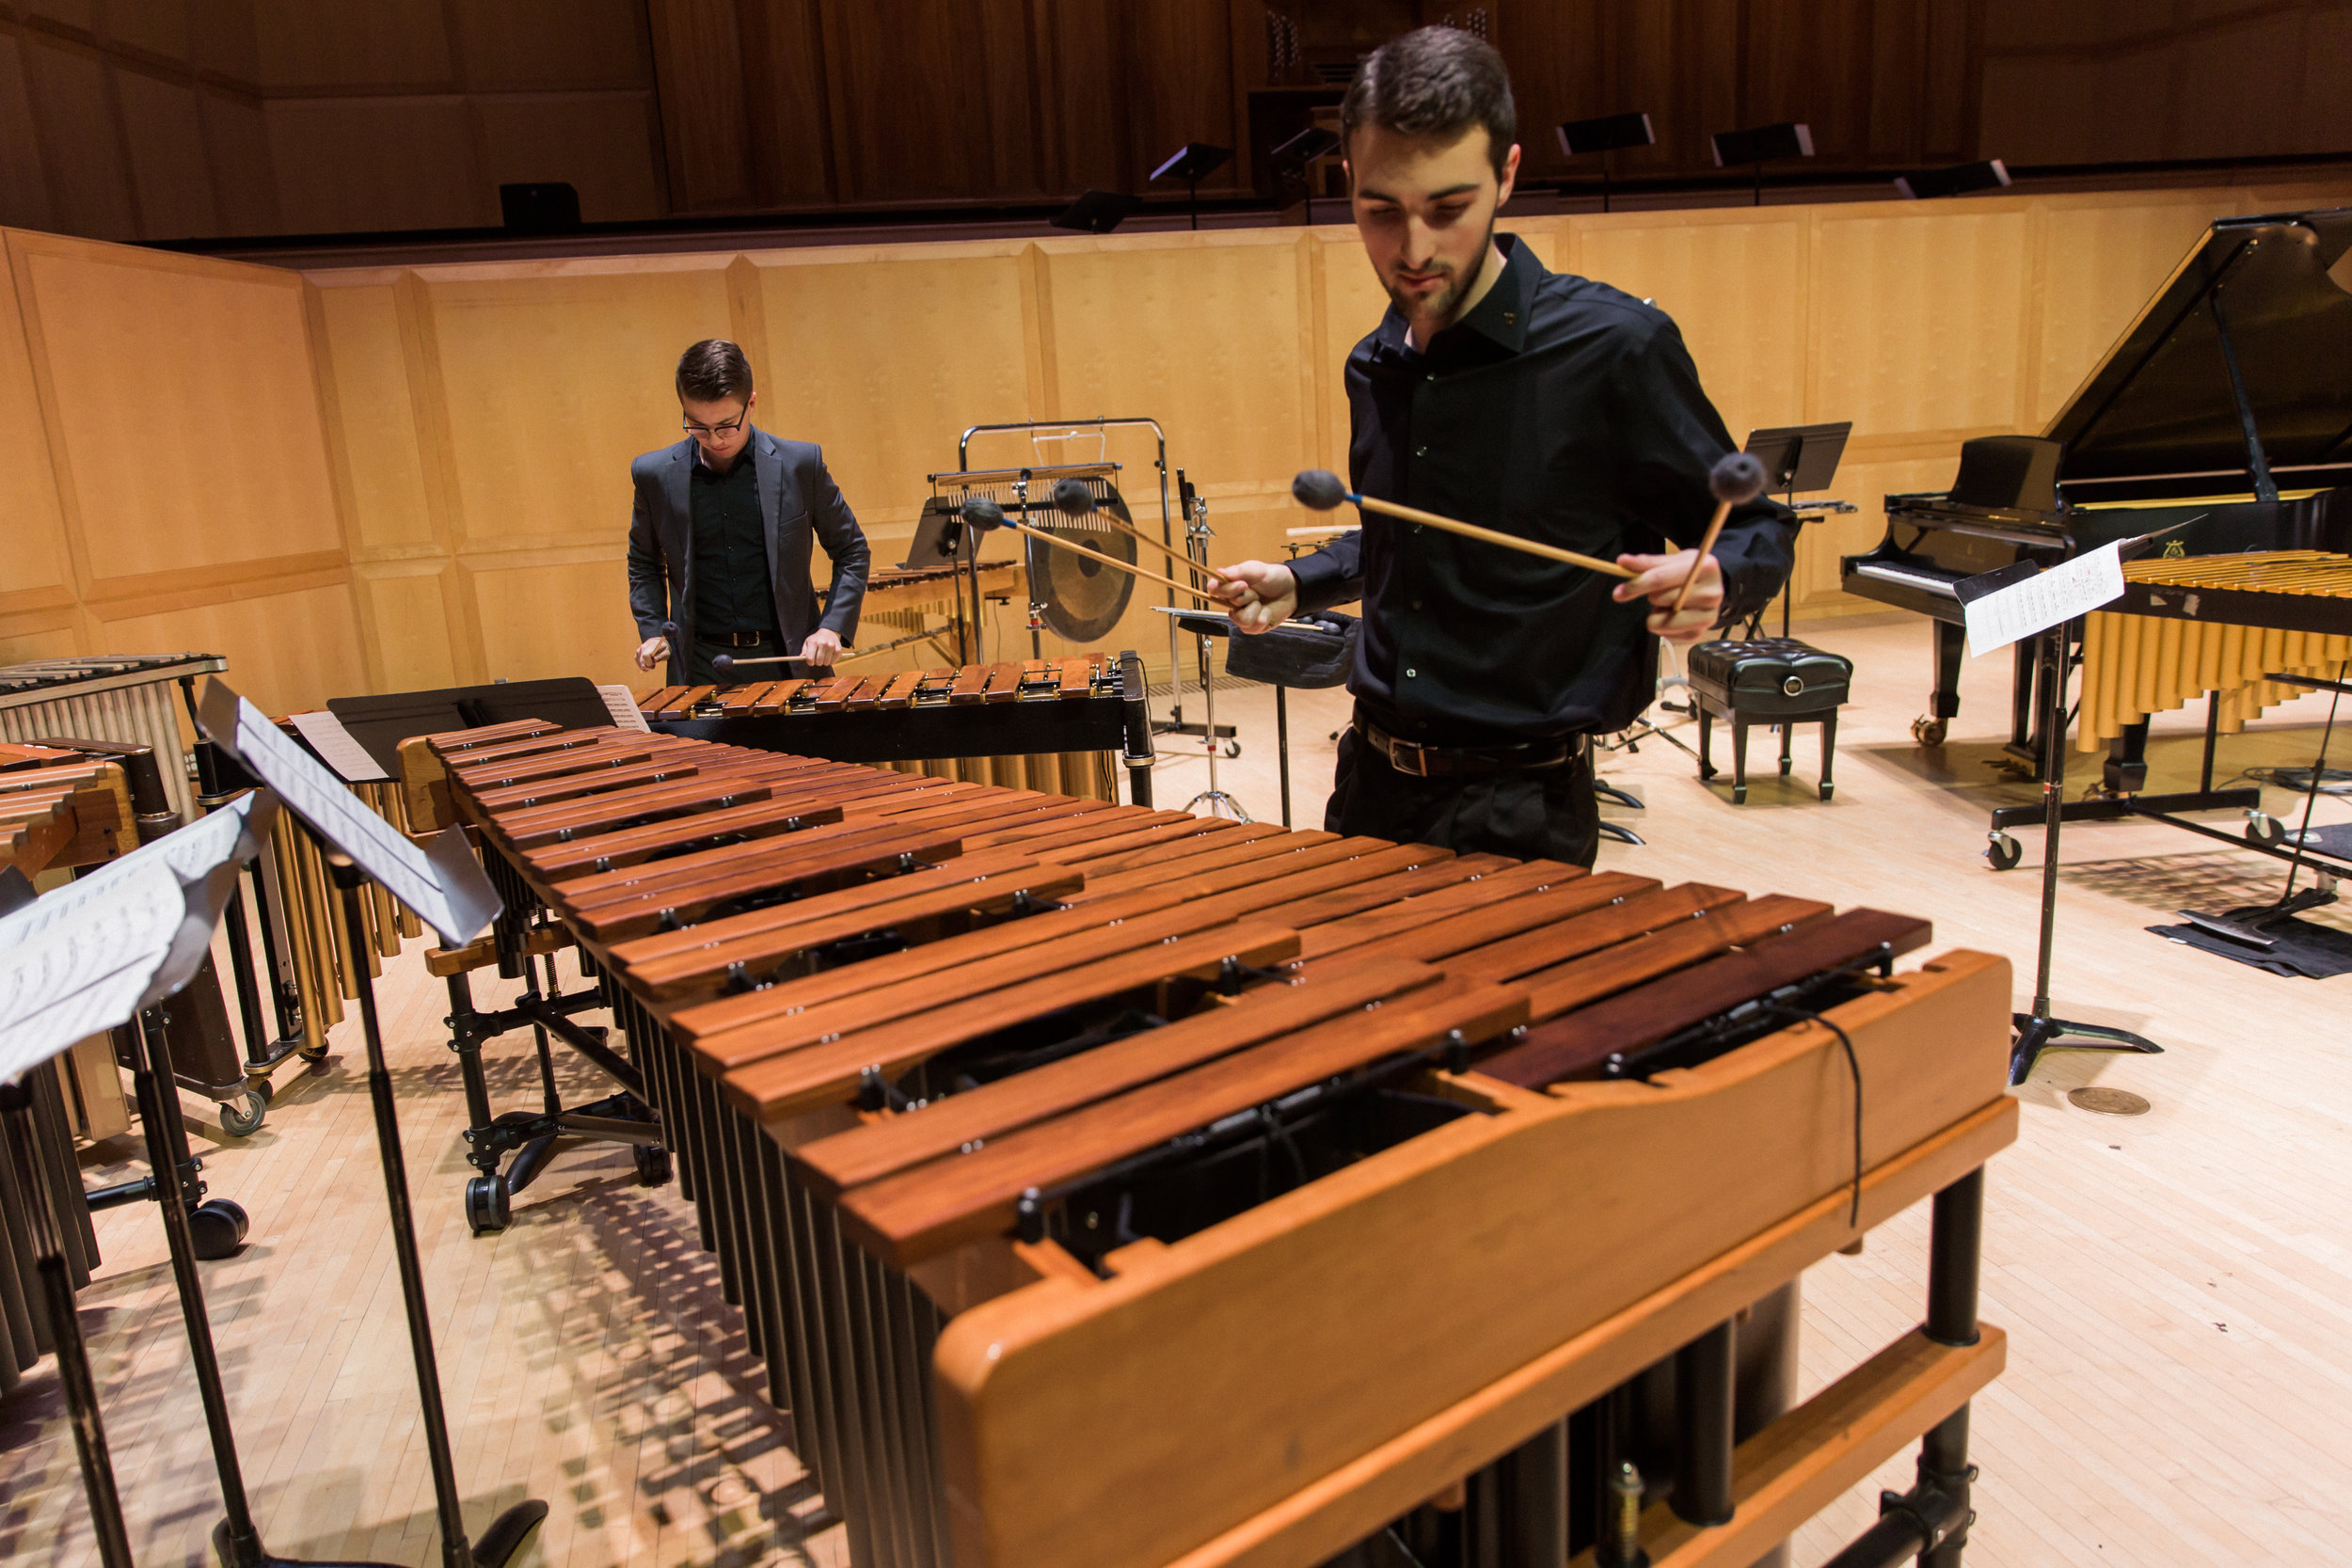 School of Music Percussion Ensemble 022 edit.JPG